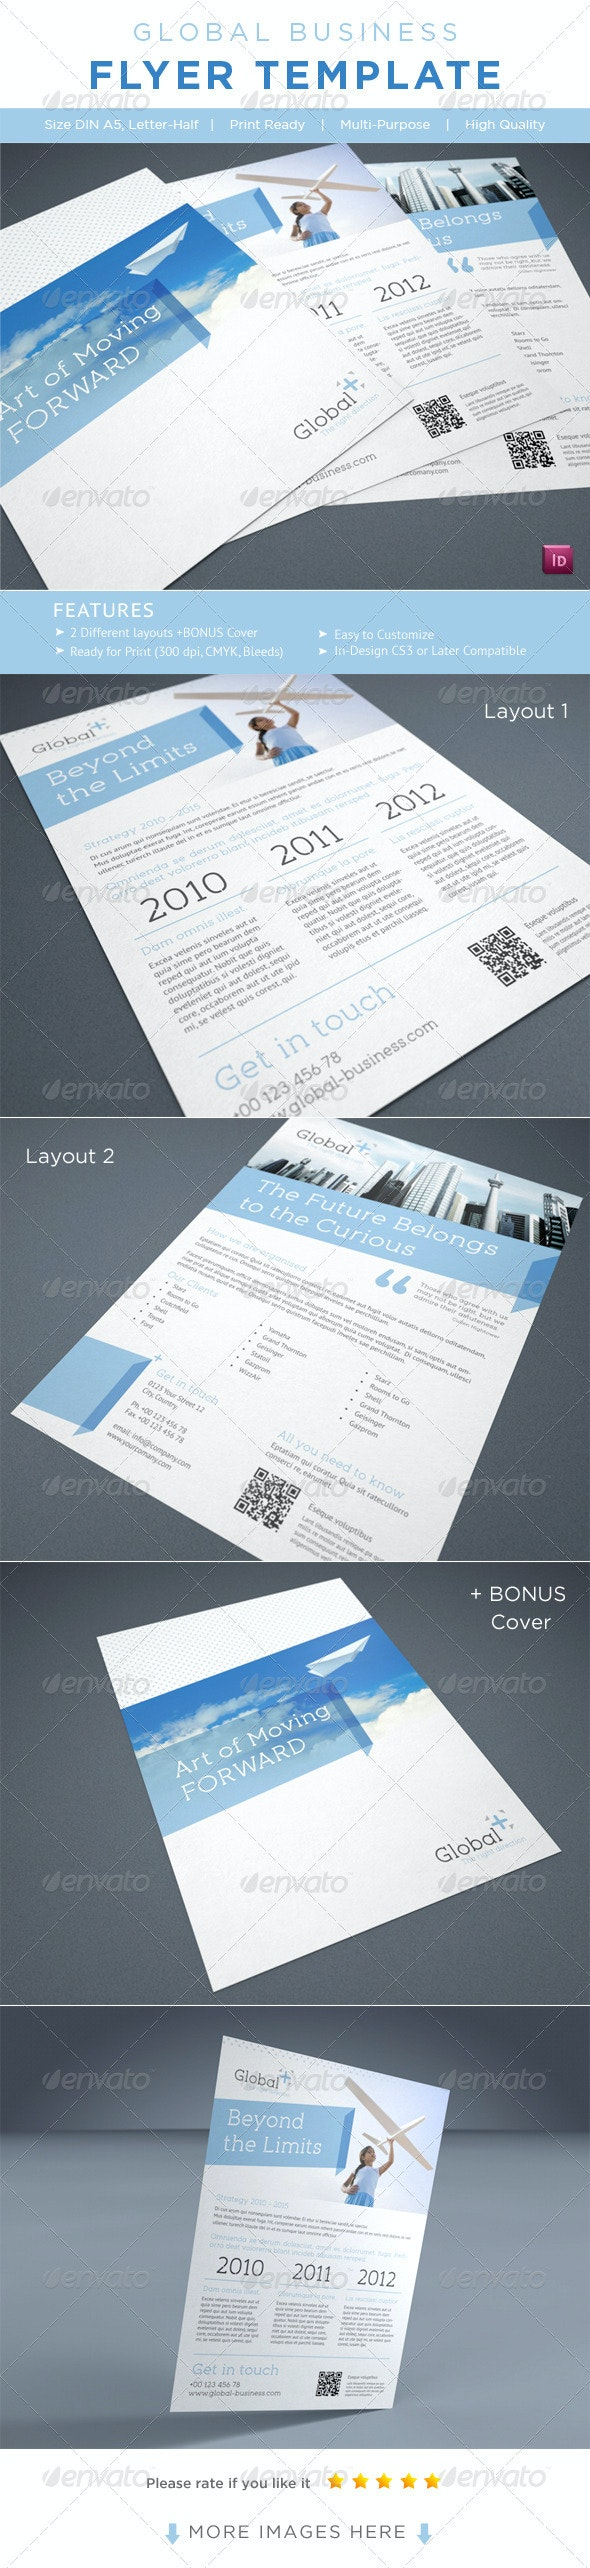 Business Flyer / AD Template - Corporate Flyers